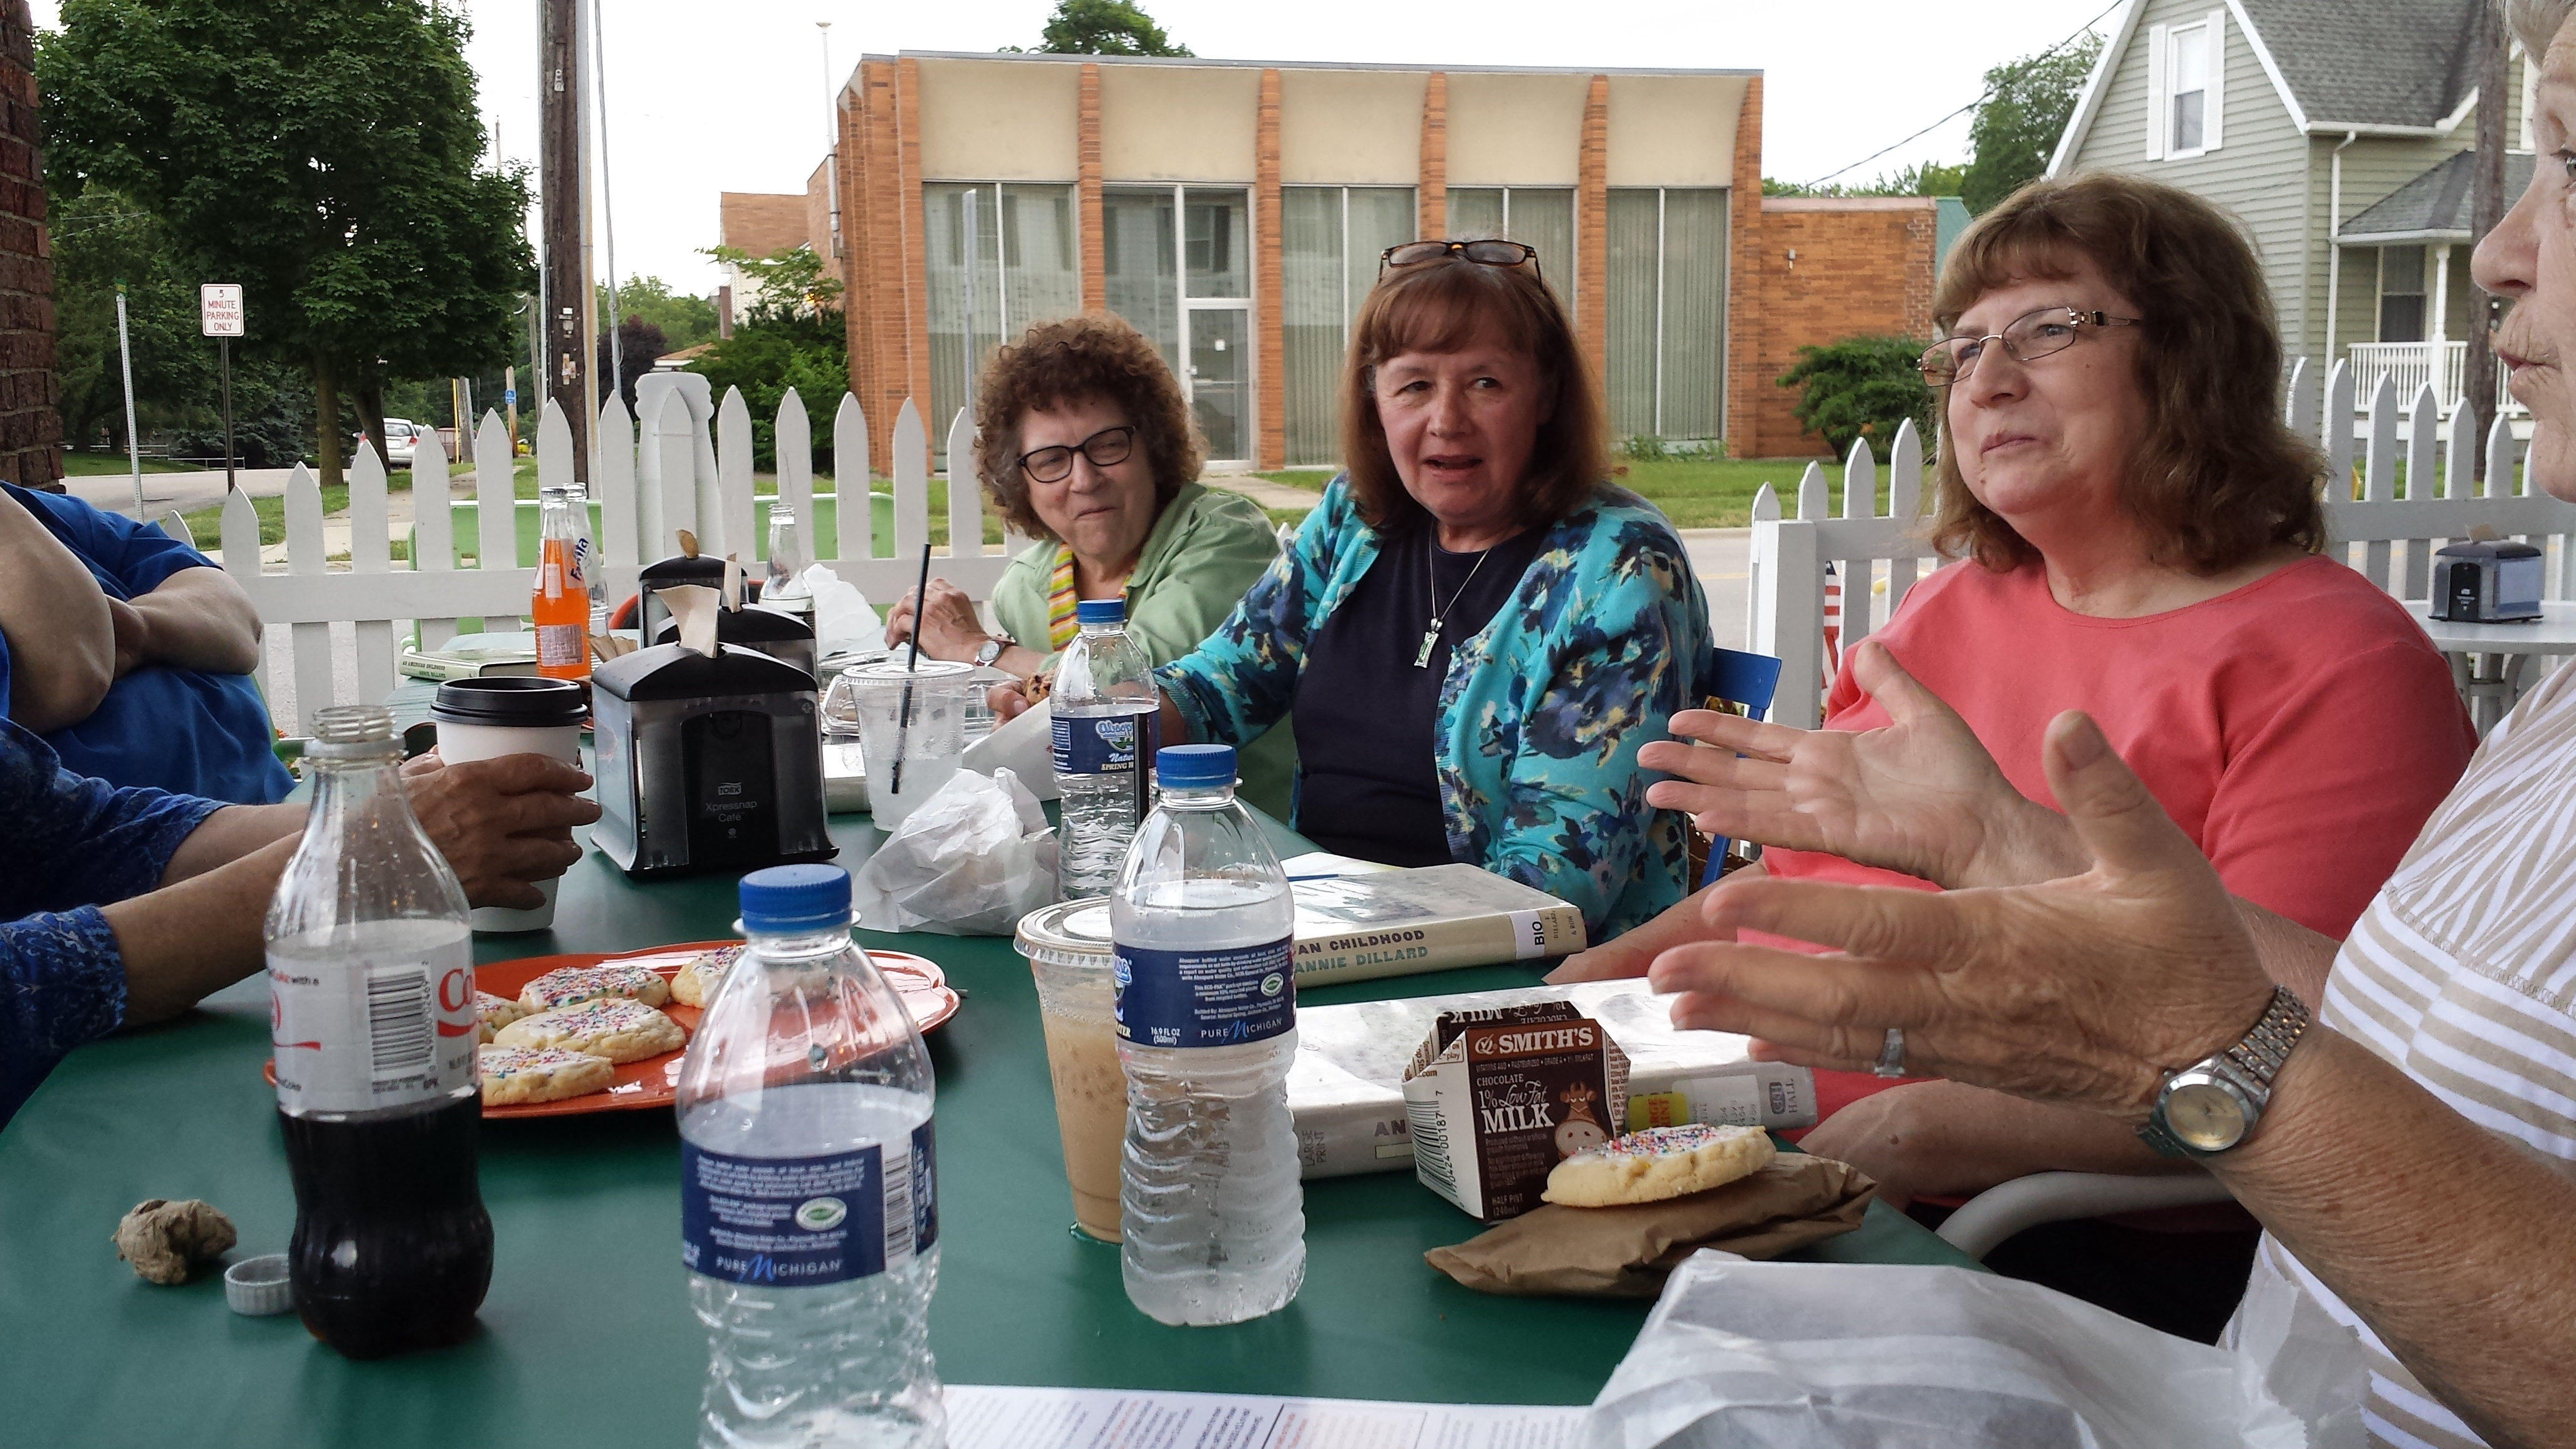 Everyone enjoyed delicious food with a great book discussion